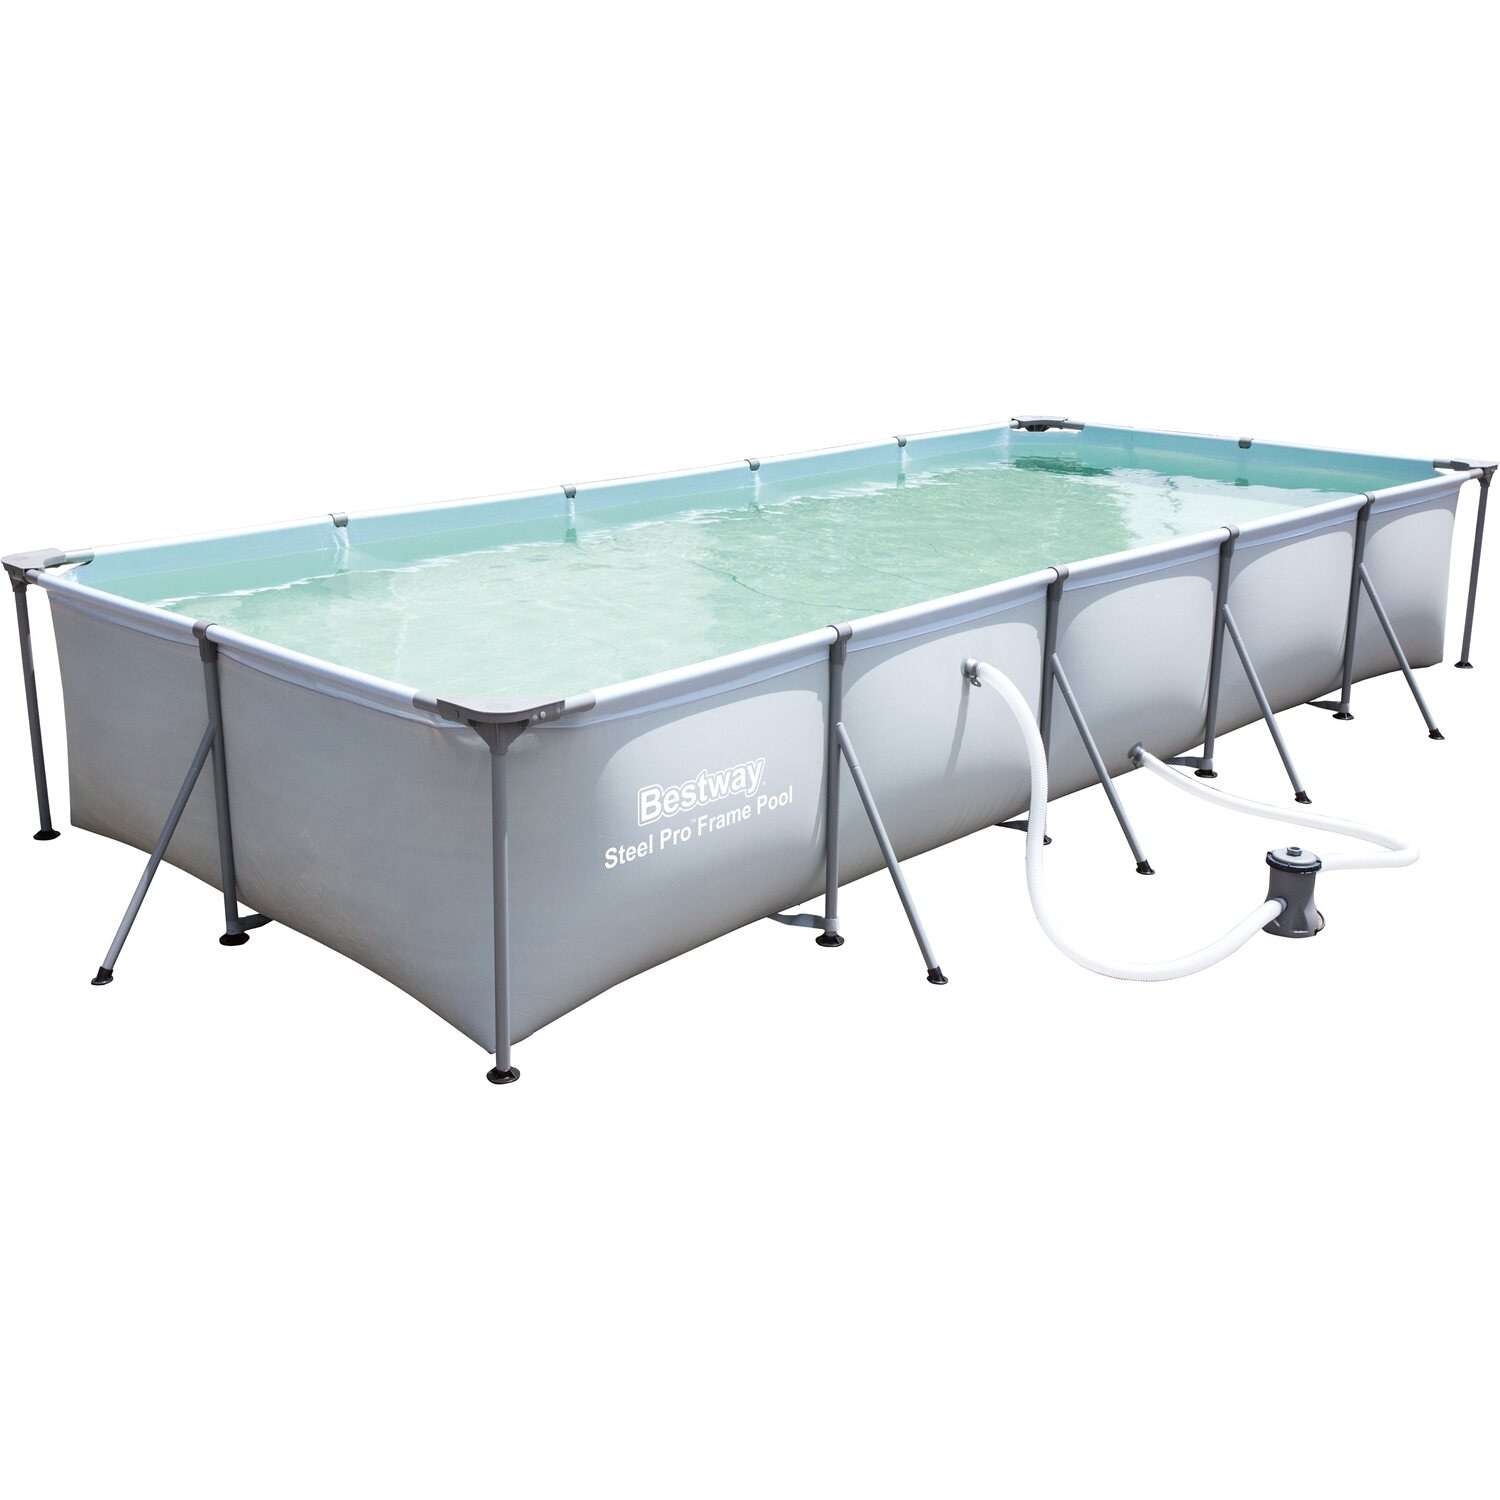 Bestway metallrahmenpool 457 cm x 211 cm x 81 cm kaufen for Bestway pool bei obi